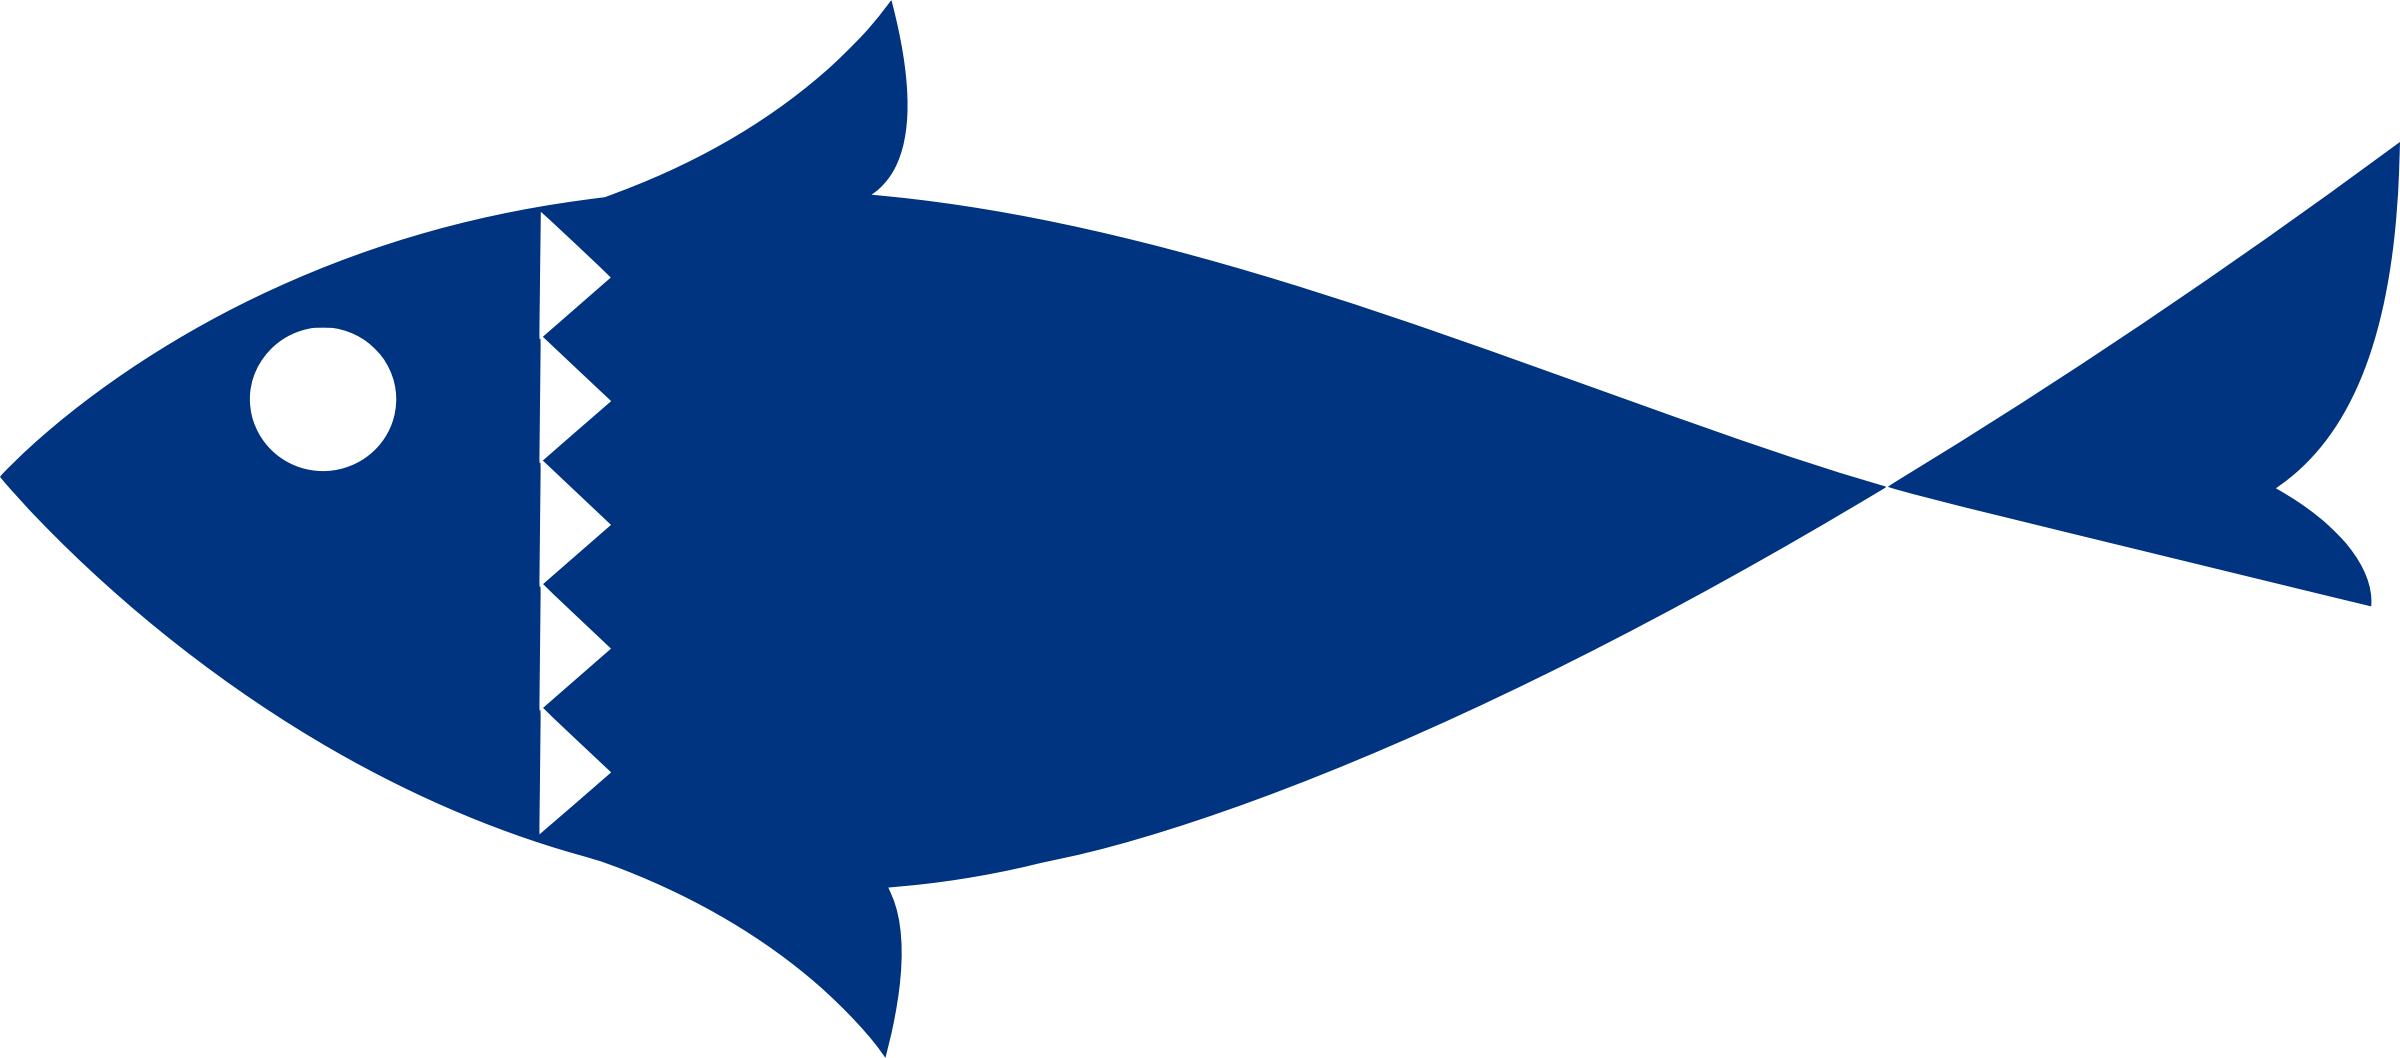 Fish vectorized by Firkin